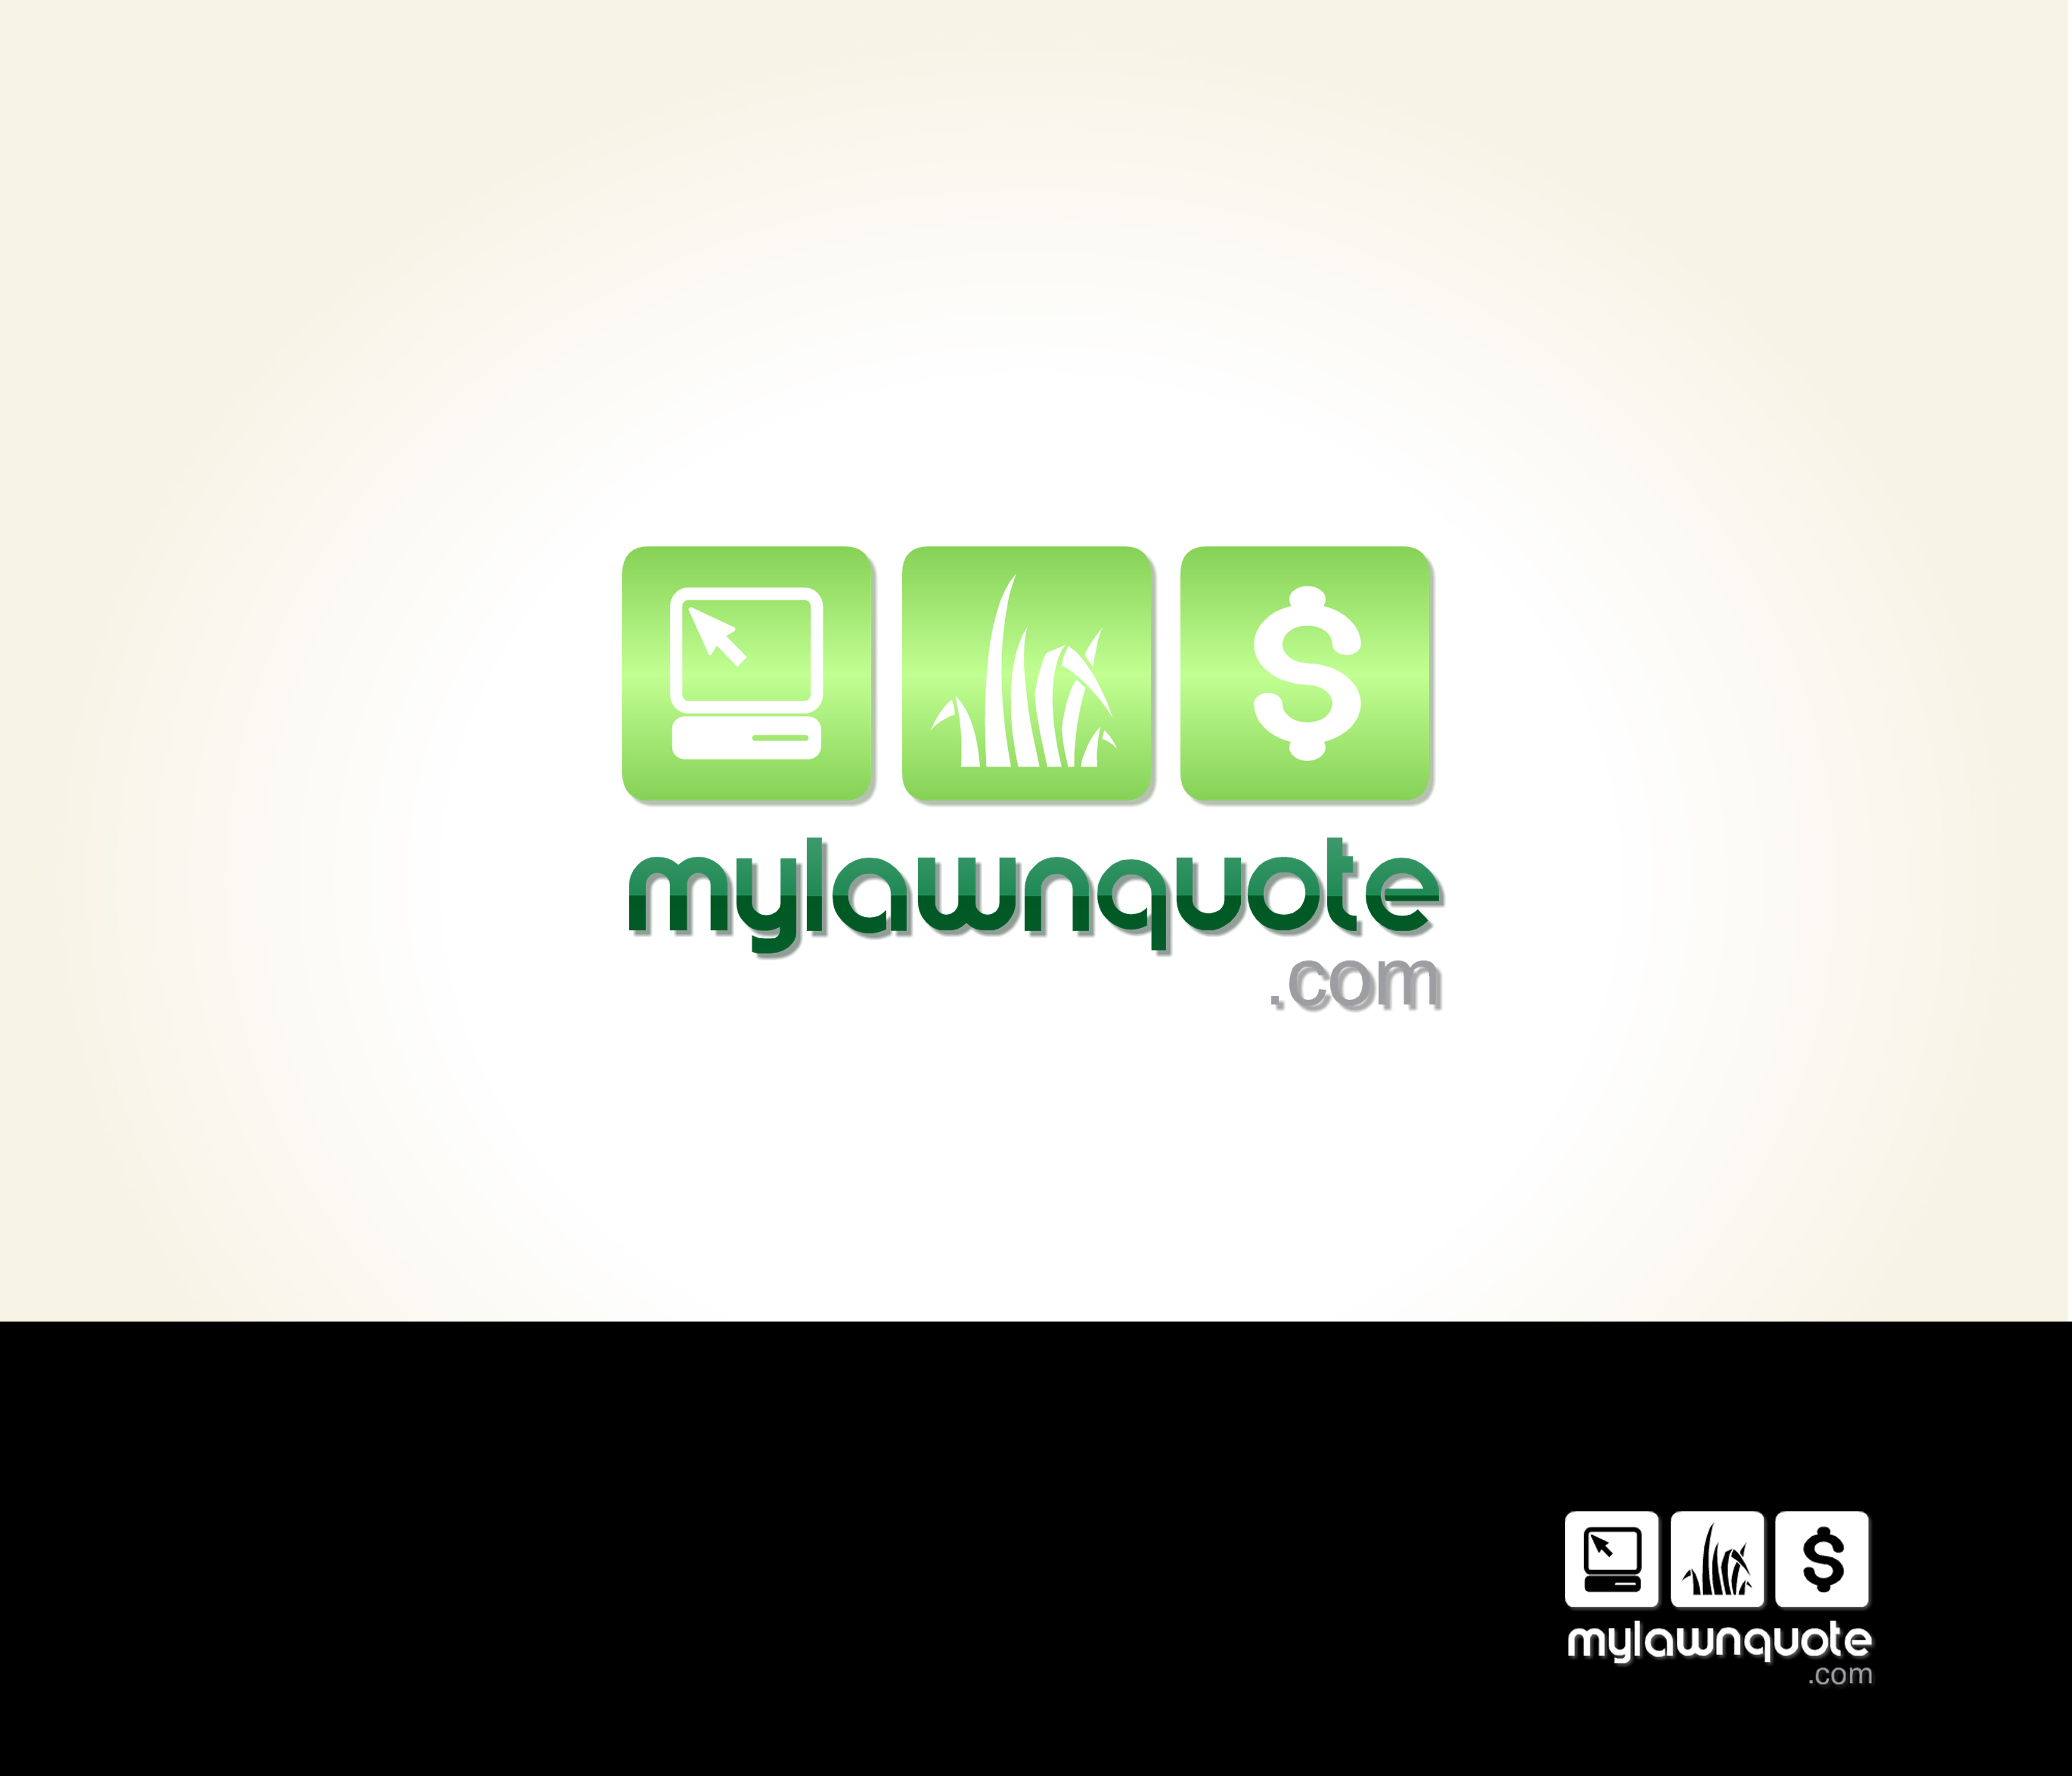 Logo Design by Lara Puno - Entry No. 15 in the Logo Design Contest Logo Design Needed for Exciting New Company mylawnquote.com.